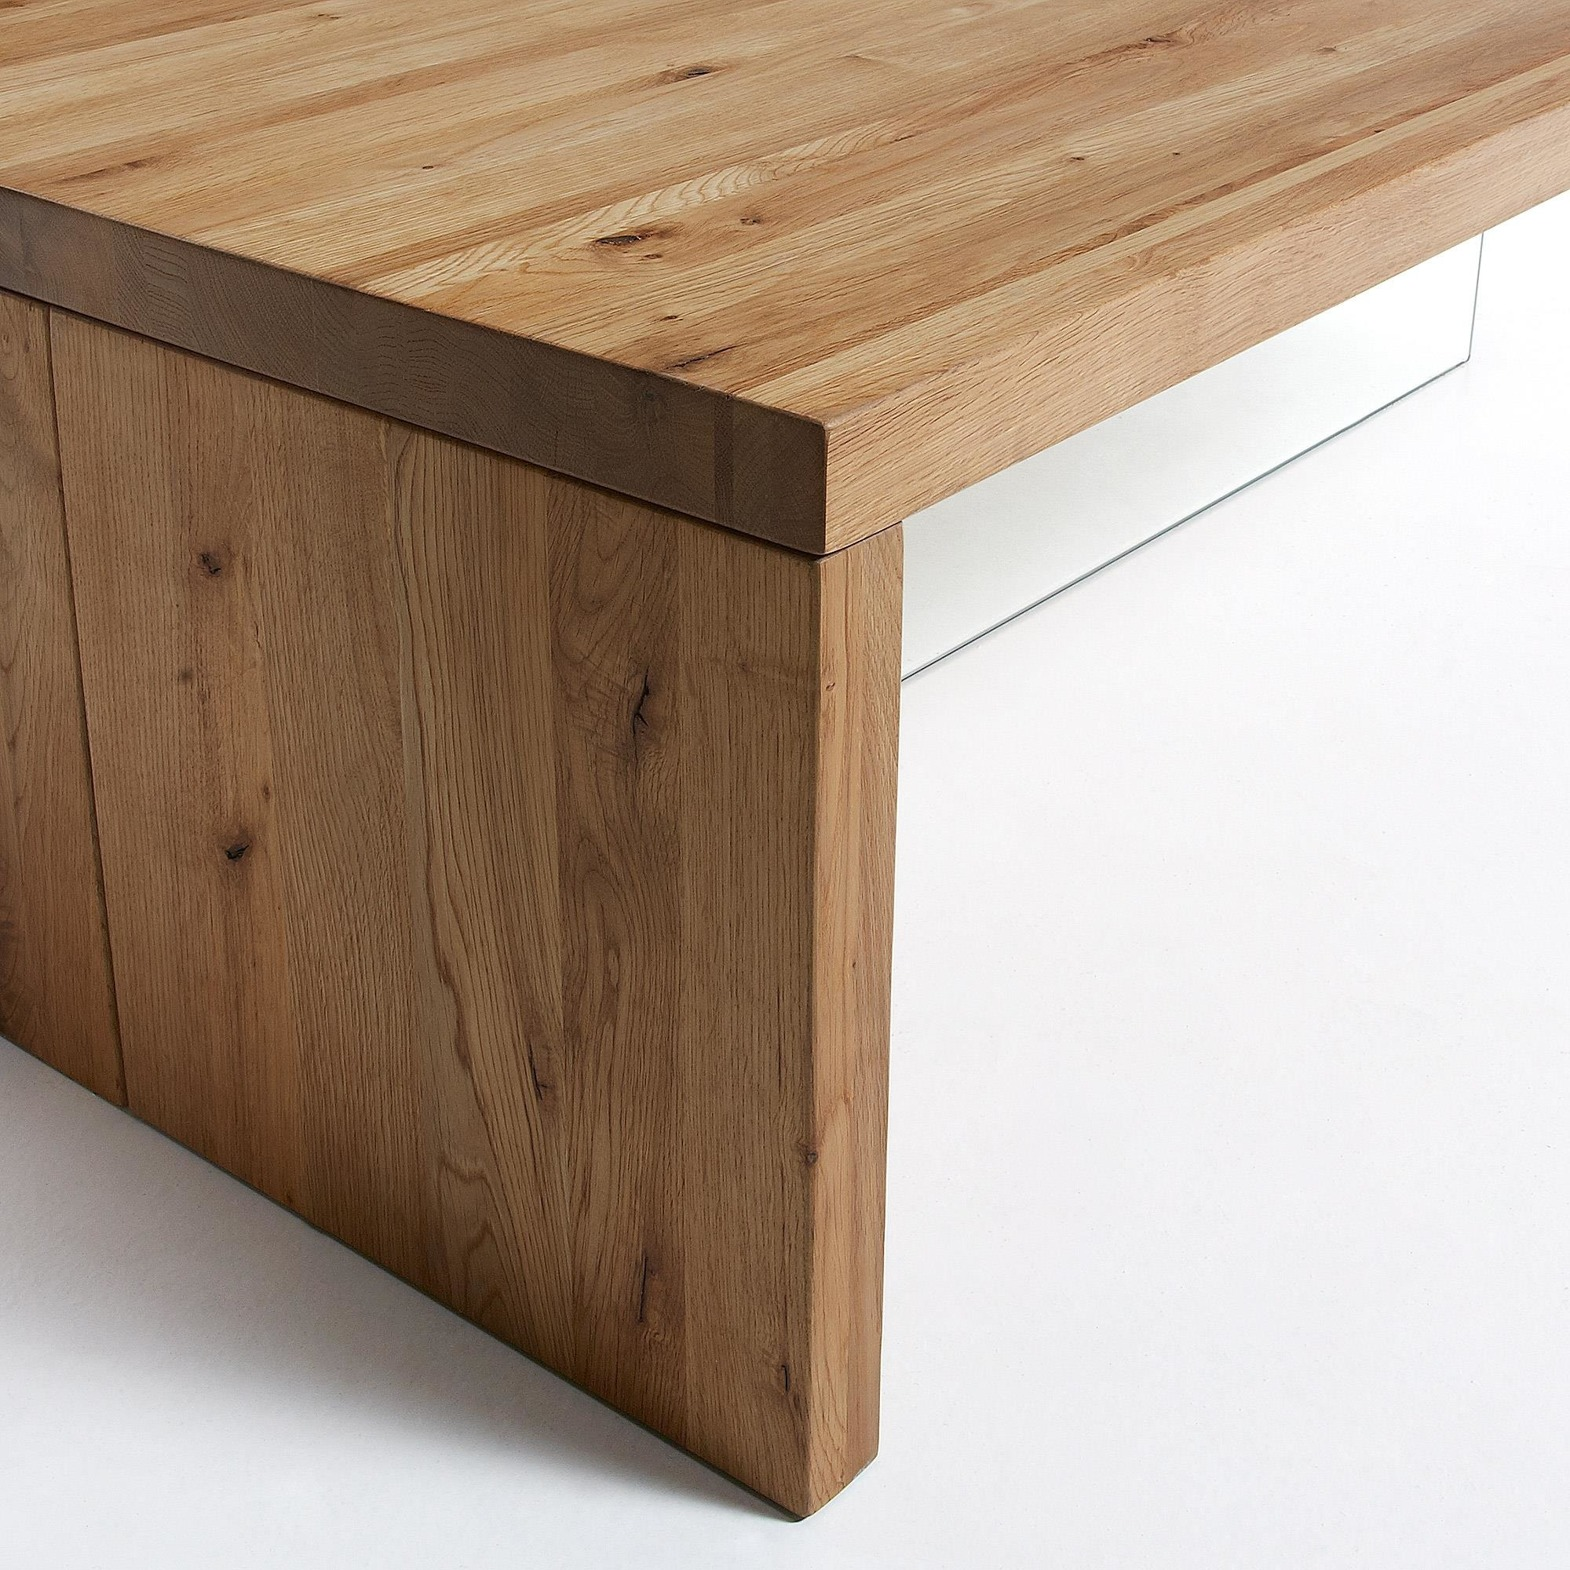 Coffee table TRISS 70x120cm natural wood